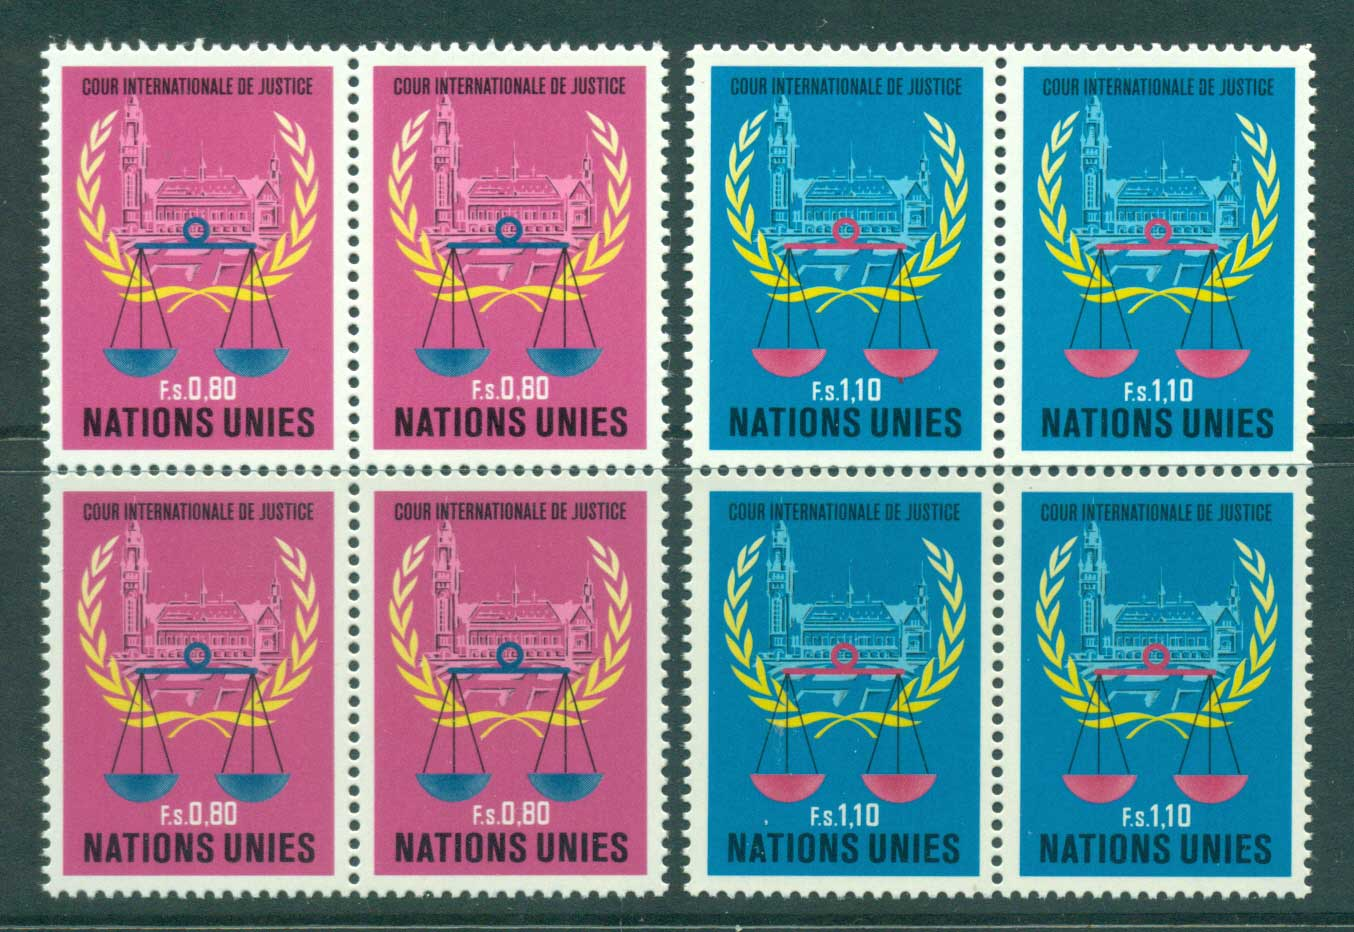 UN Geneva 1979 International Court of Justice Blk 4 MUH lot41008